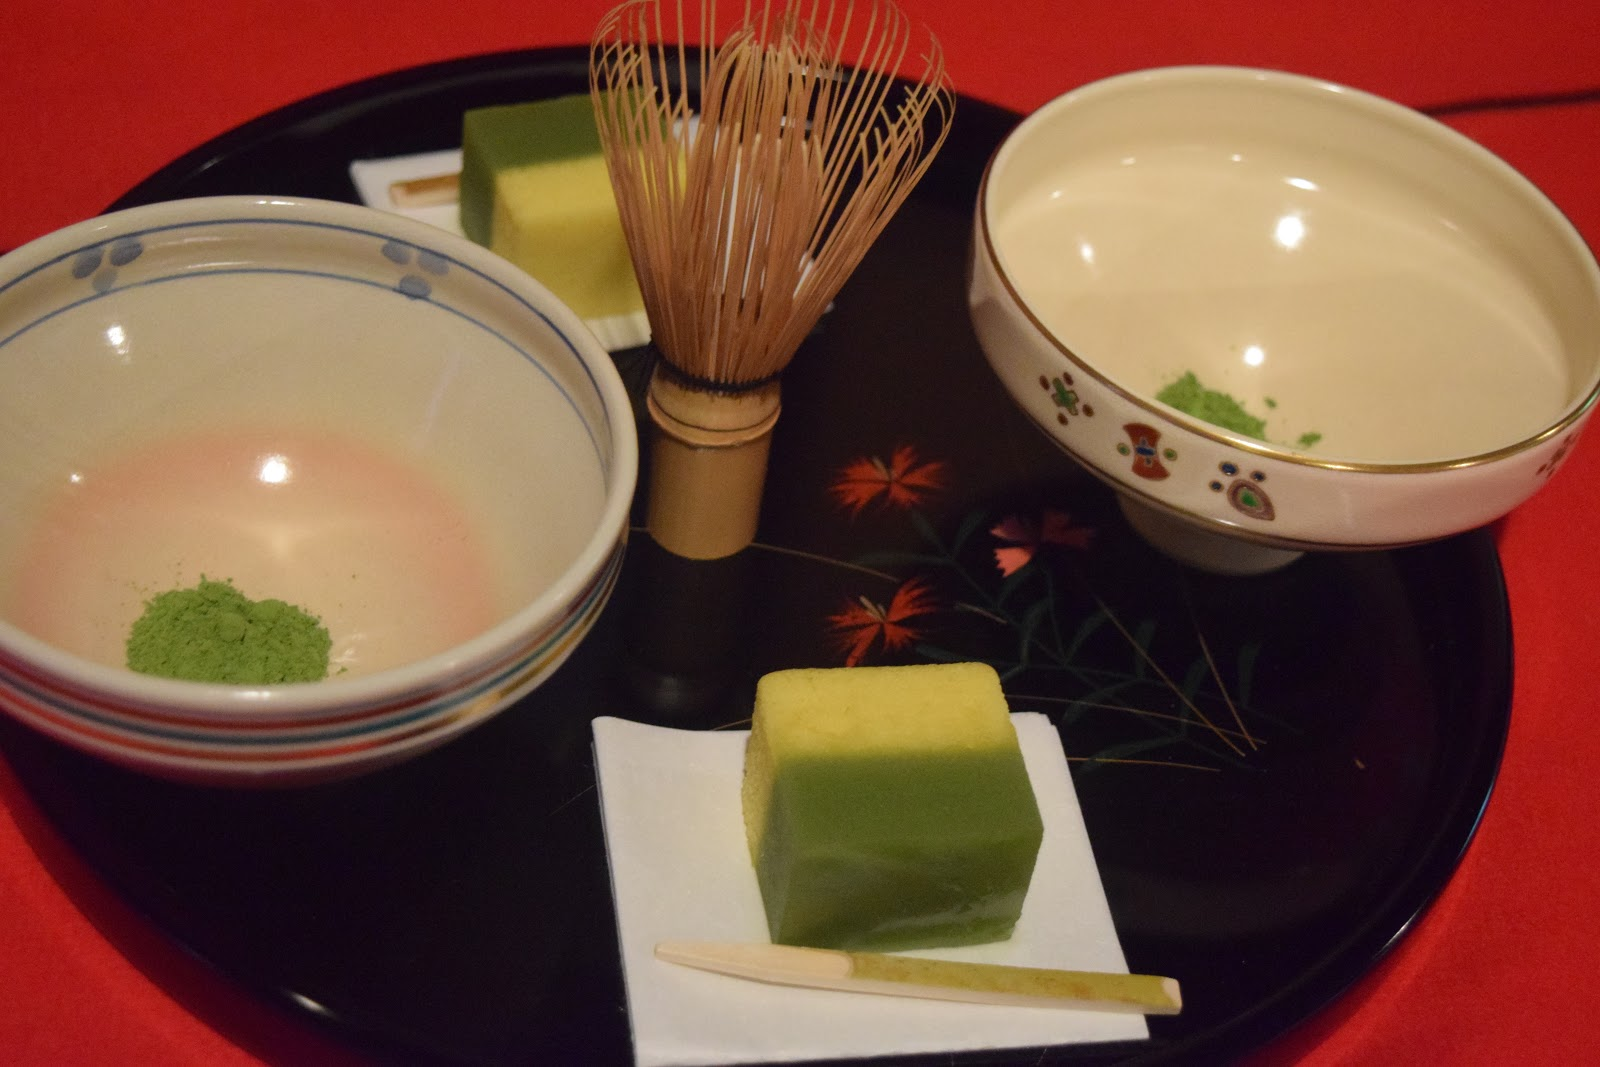 Picture displaying two tea-cups with matcha powder and two matcha cakes